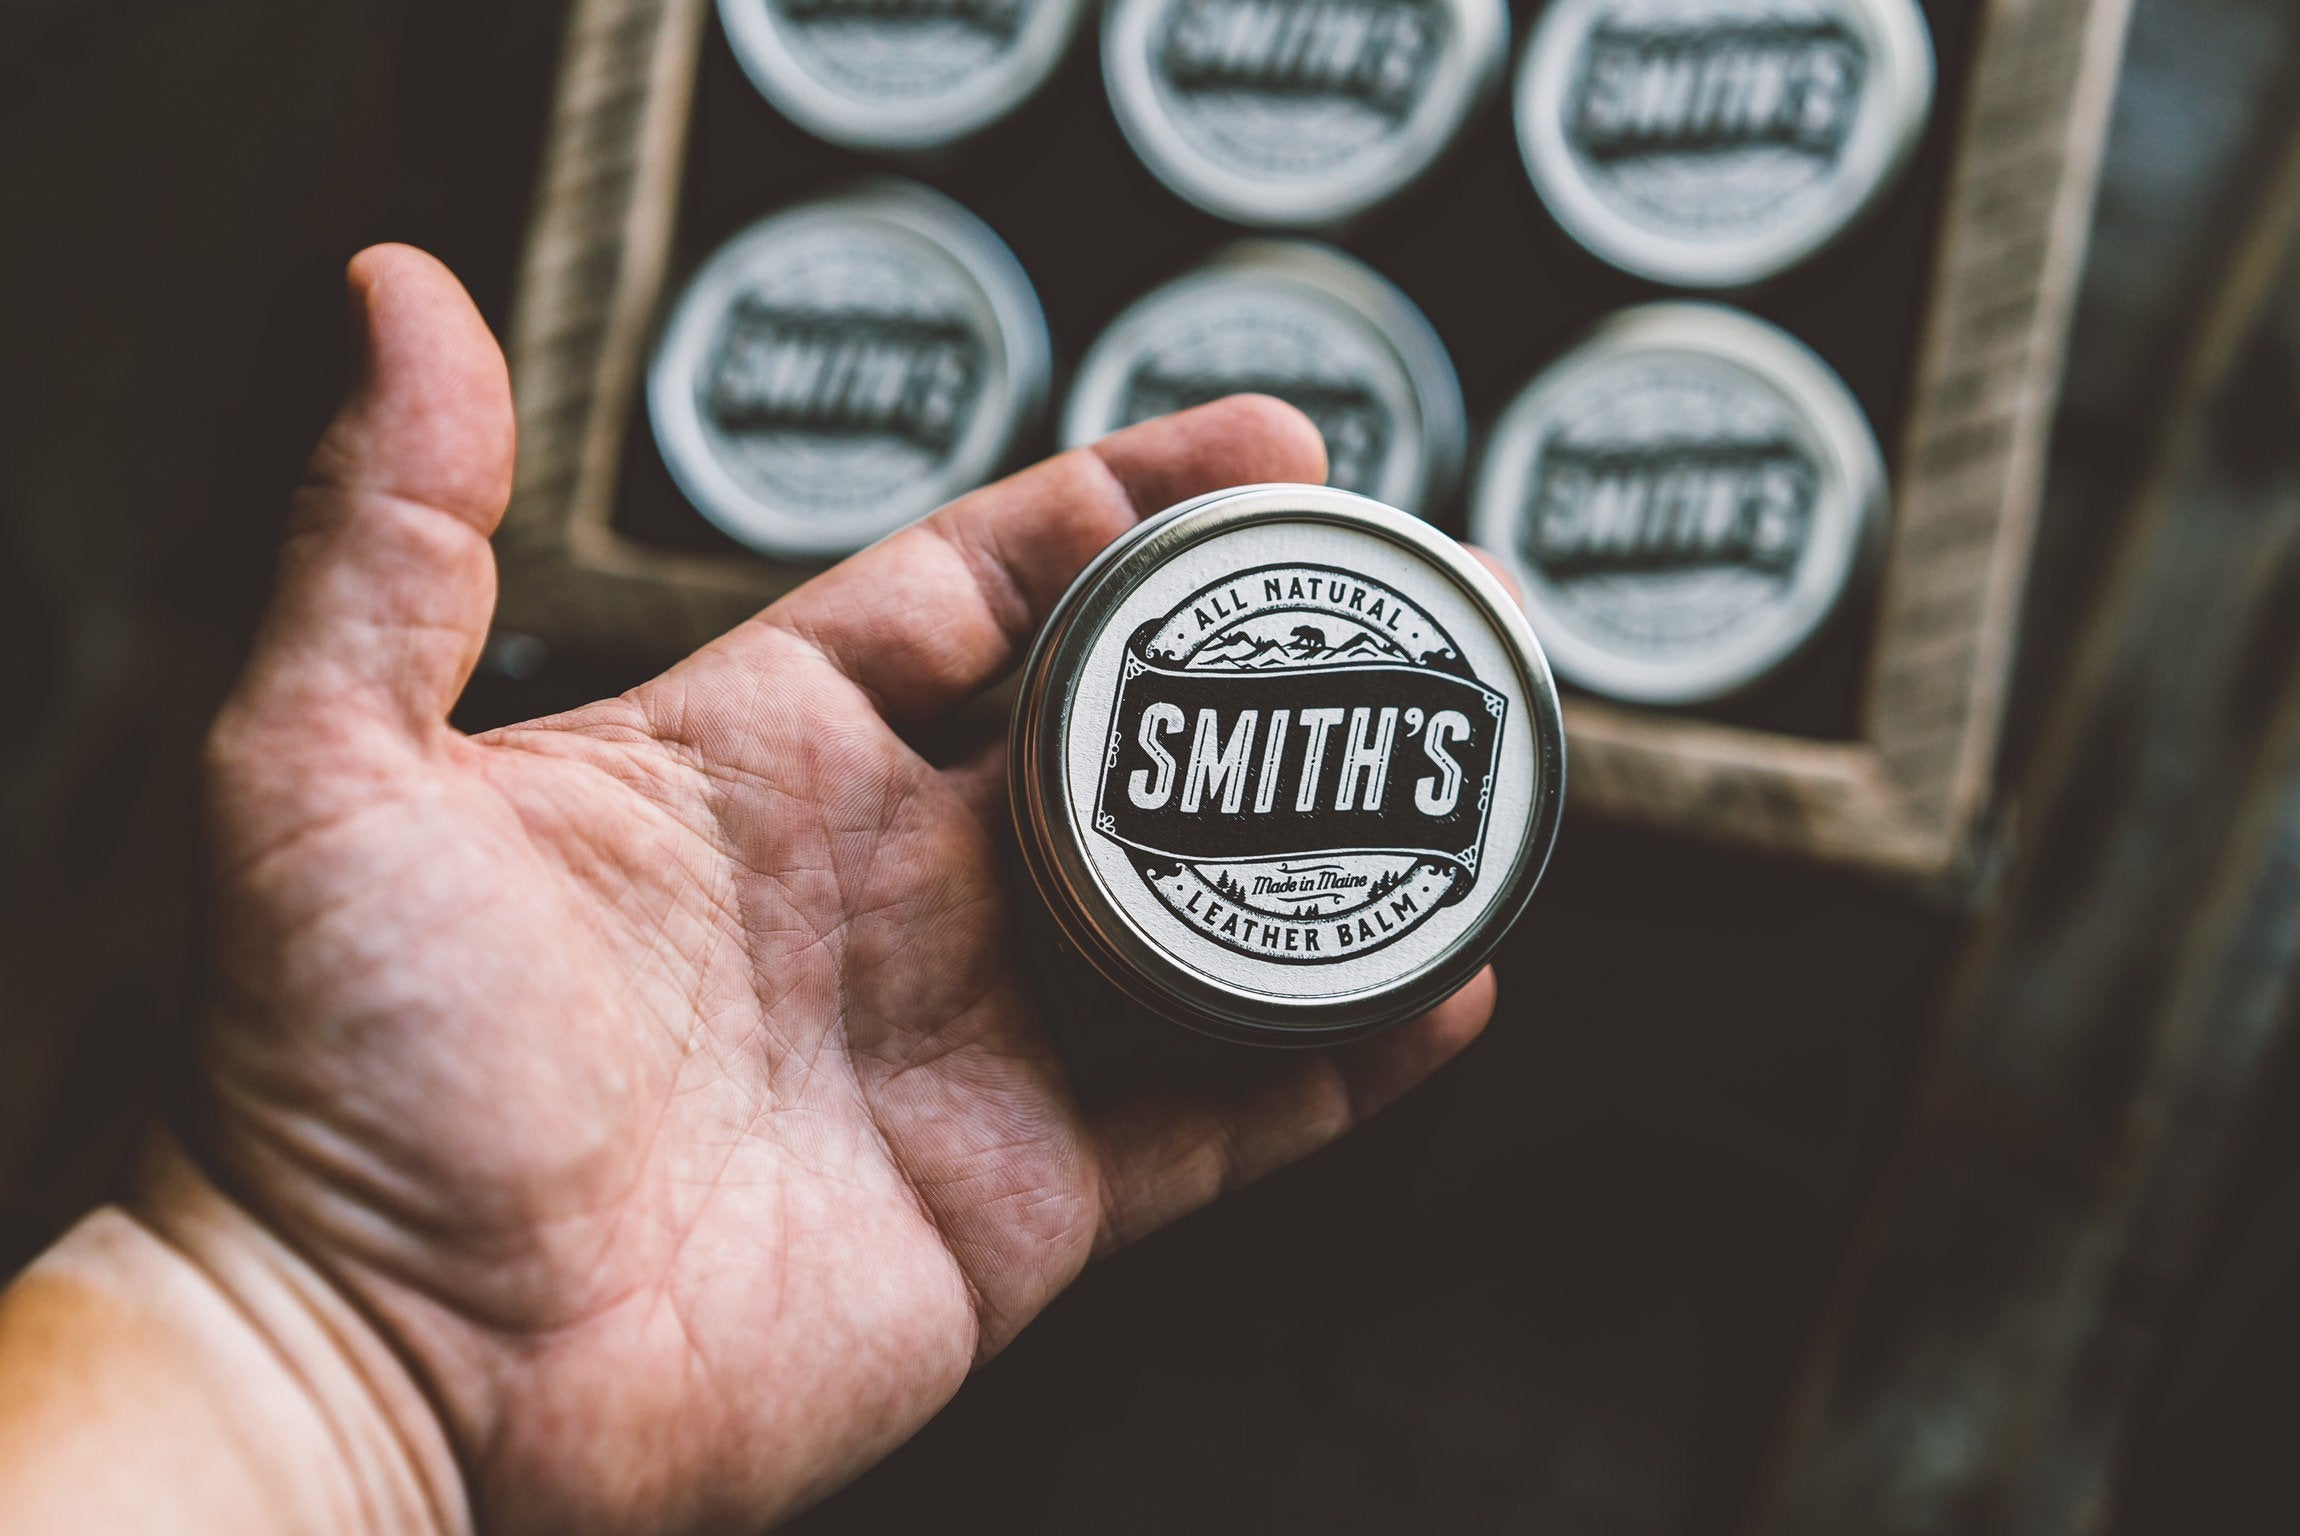 Smith's Leather Balm 100% All Natural Leather Conditioner 1 oz. tin